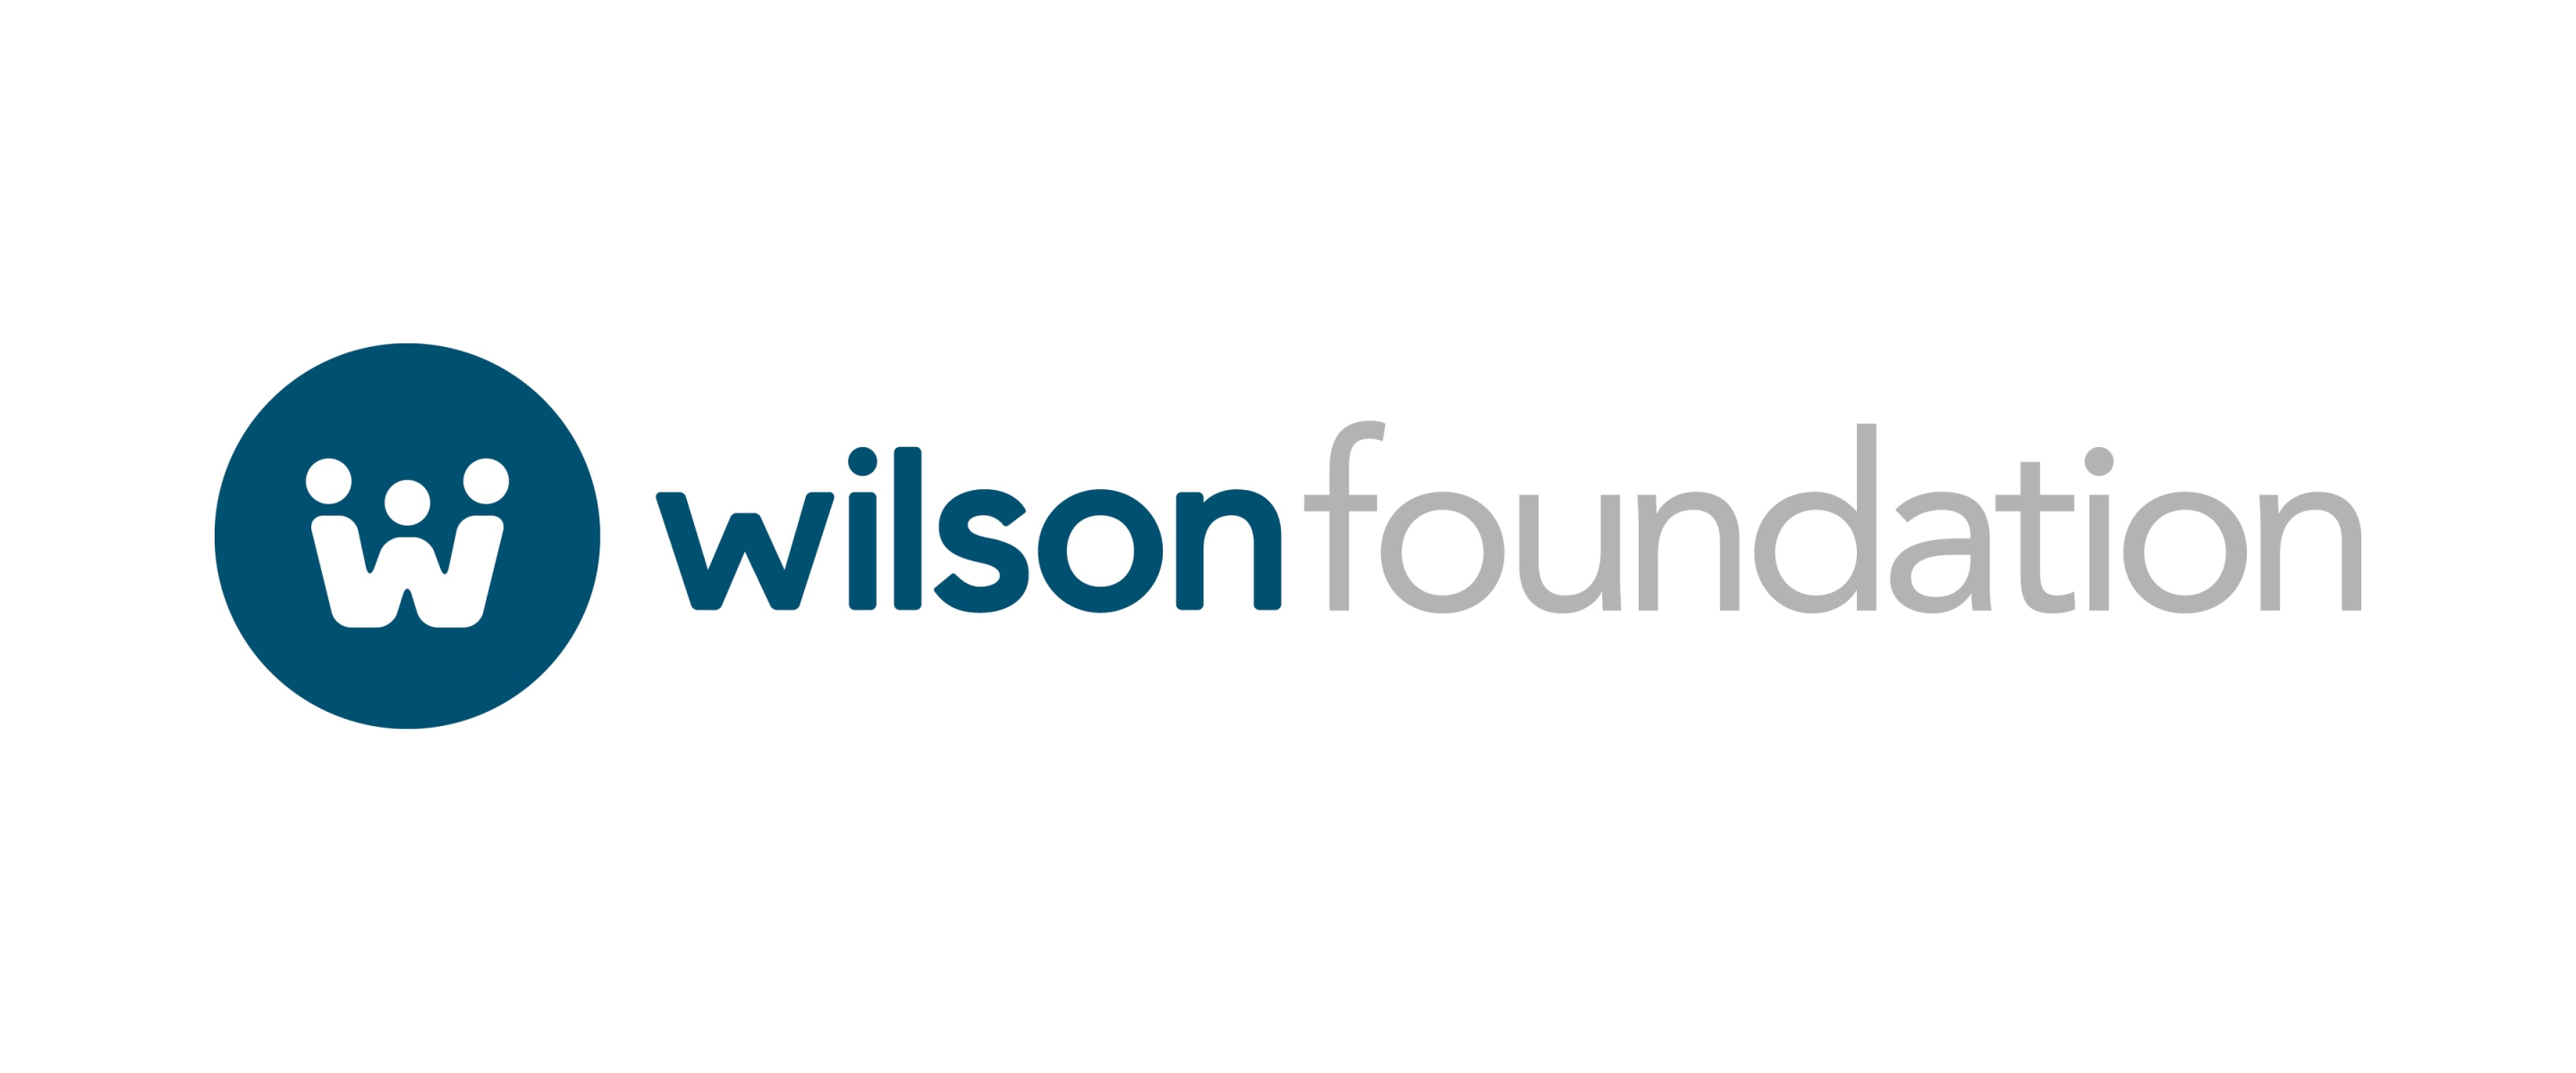 wilson_foundation.jpg